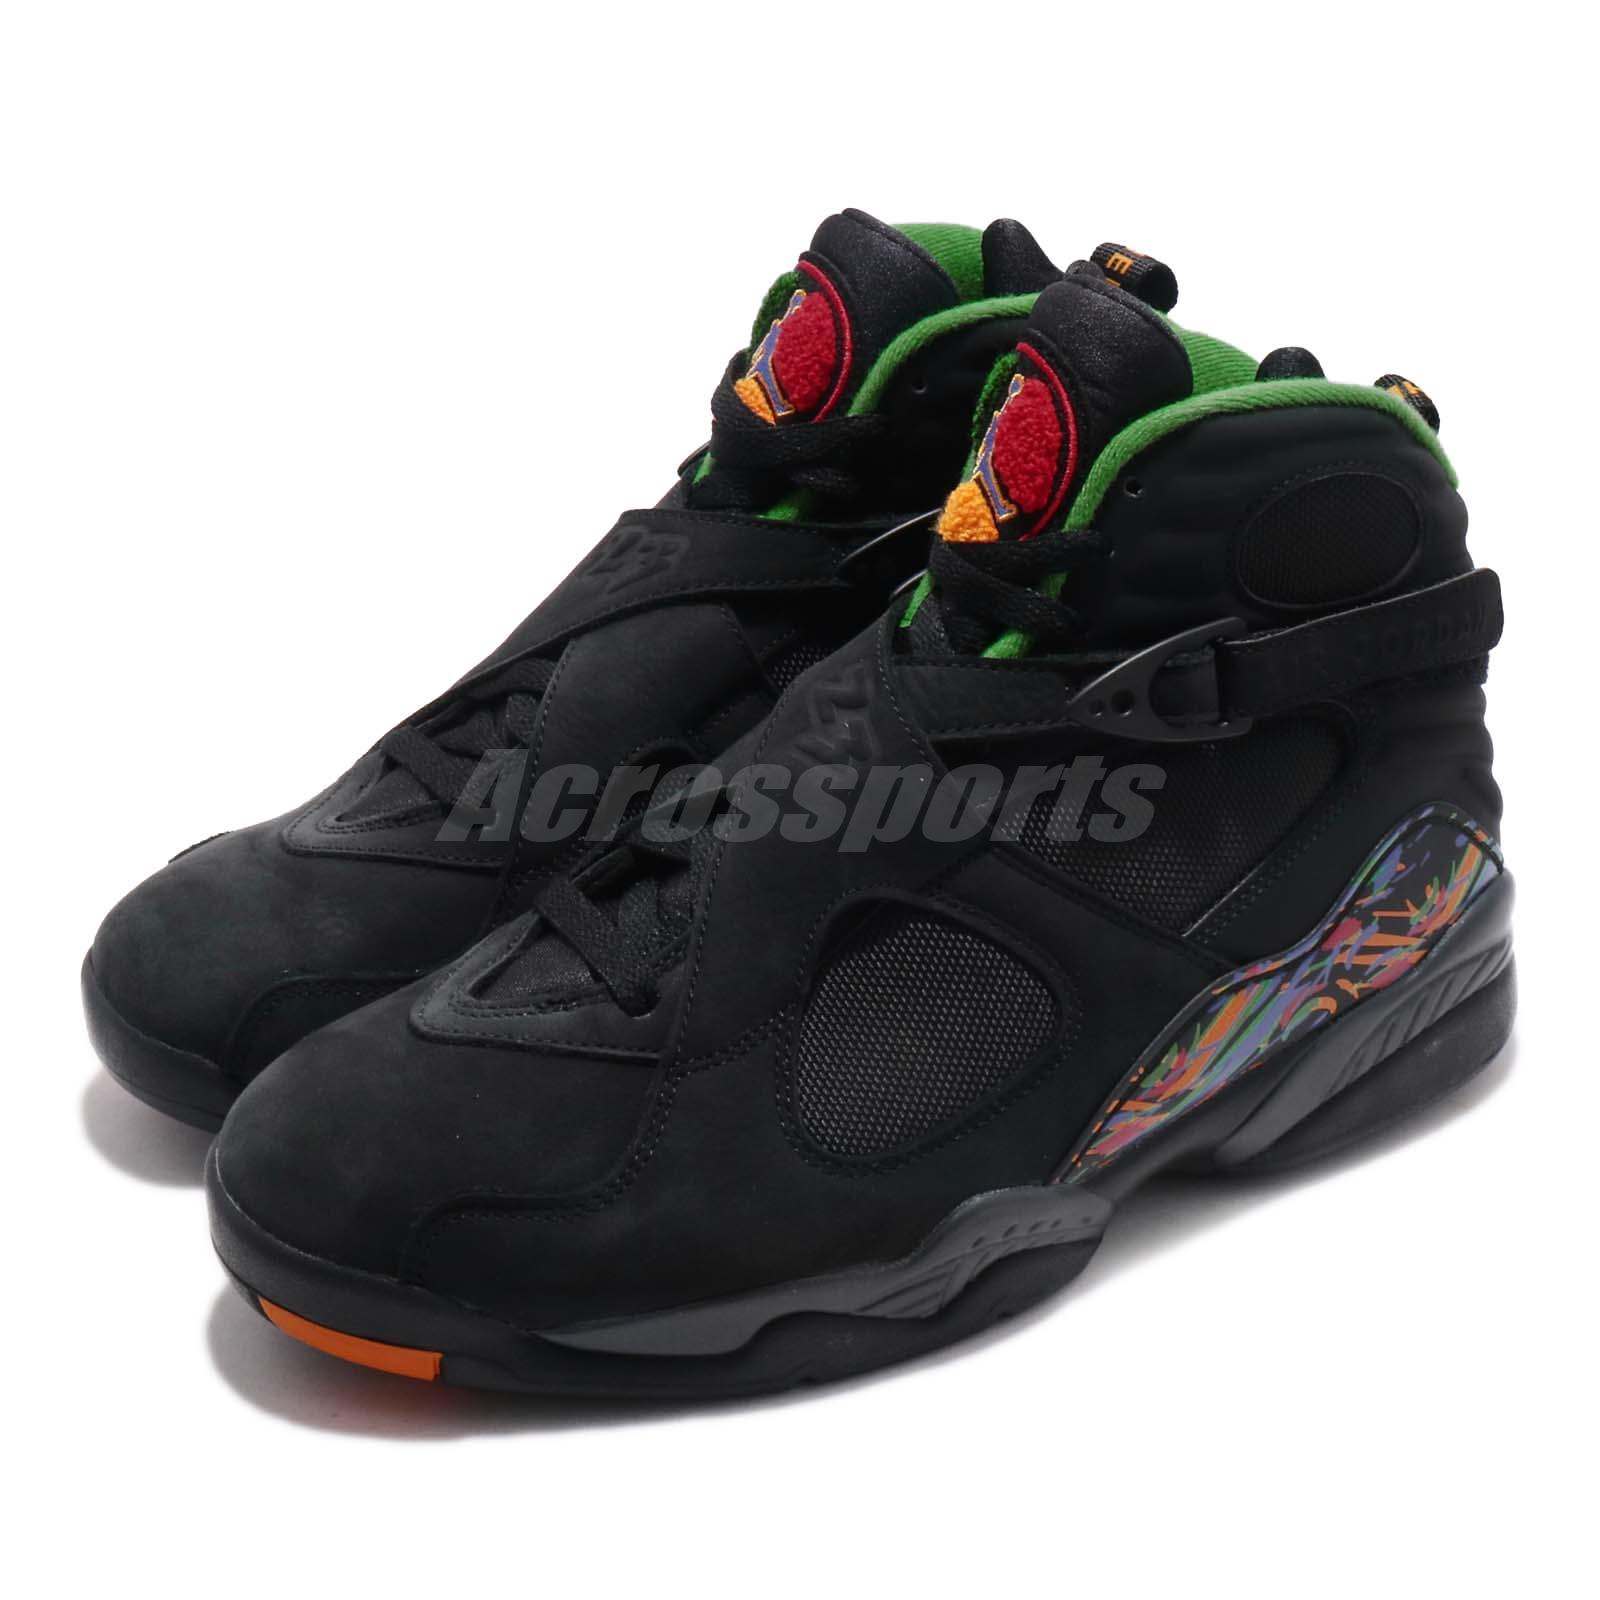 online store a68e4 2ad94 Details about Nike Air Jordan 8 Retro Tinker Air Raid Urban Jungle AJ8 VIII  305381-004